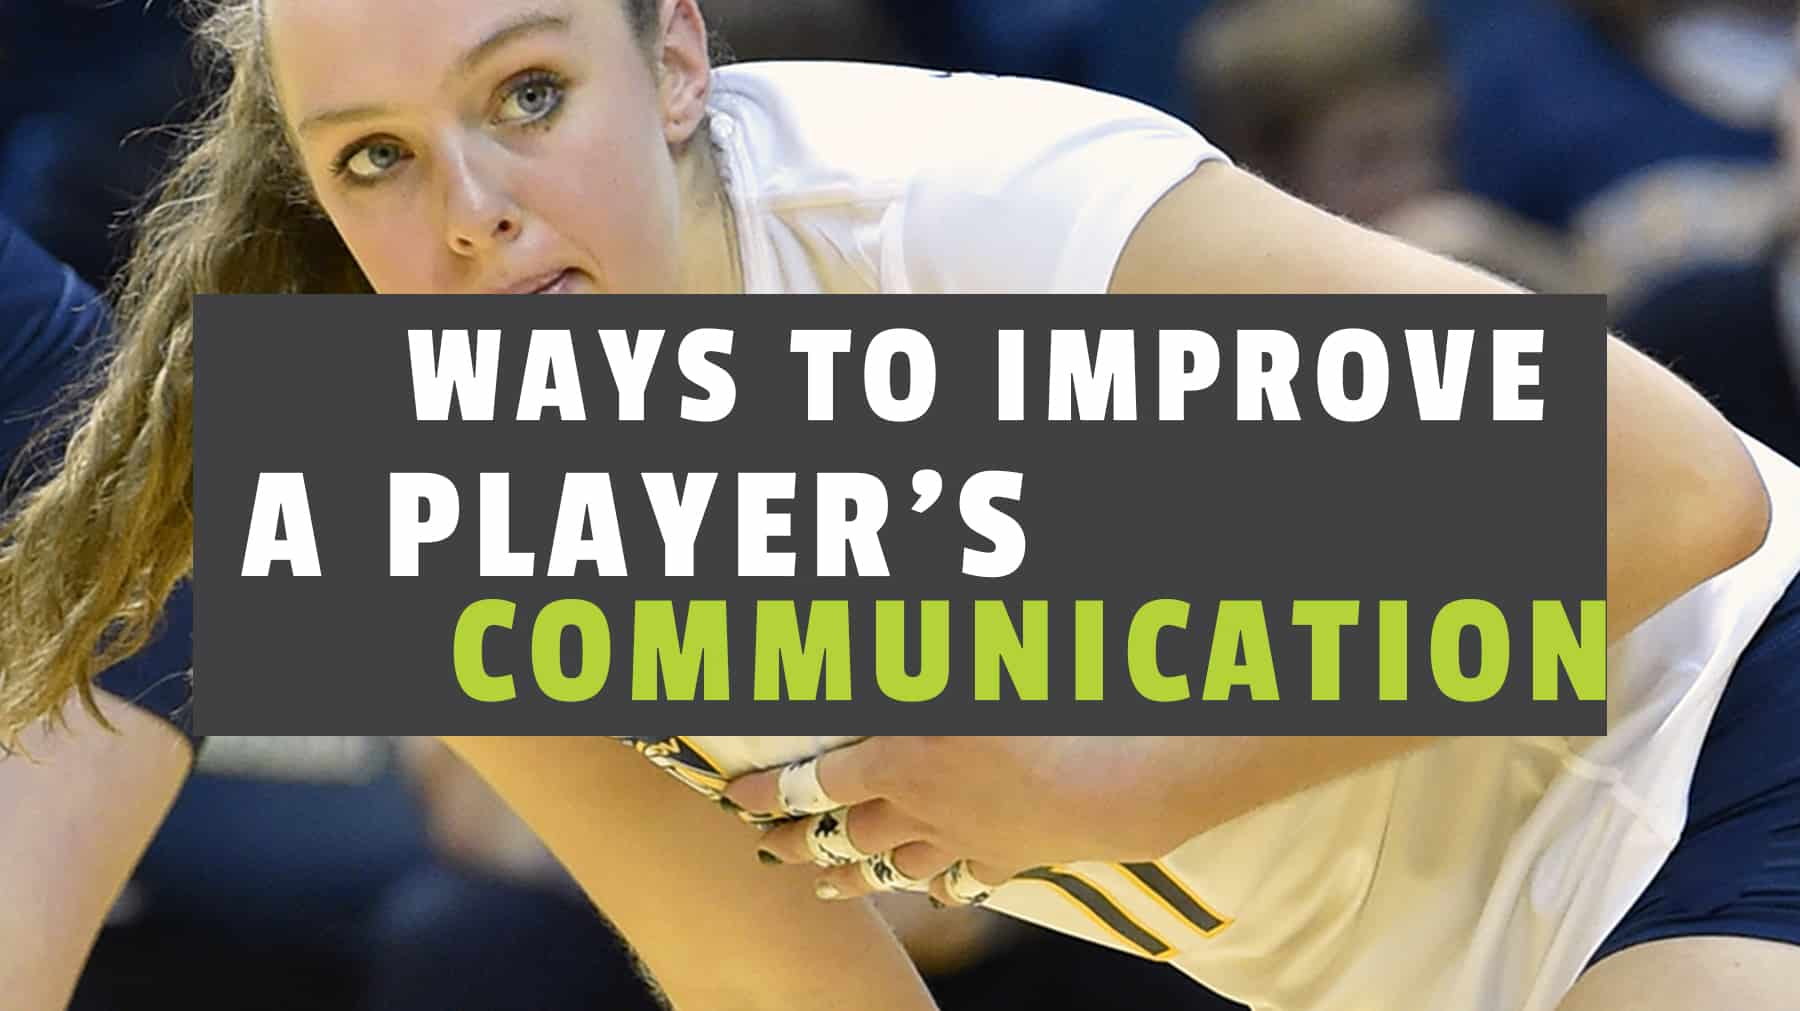 Ways to improve a player's communication